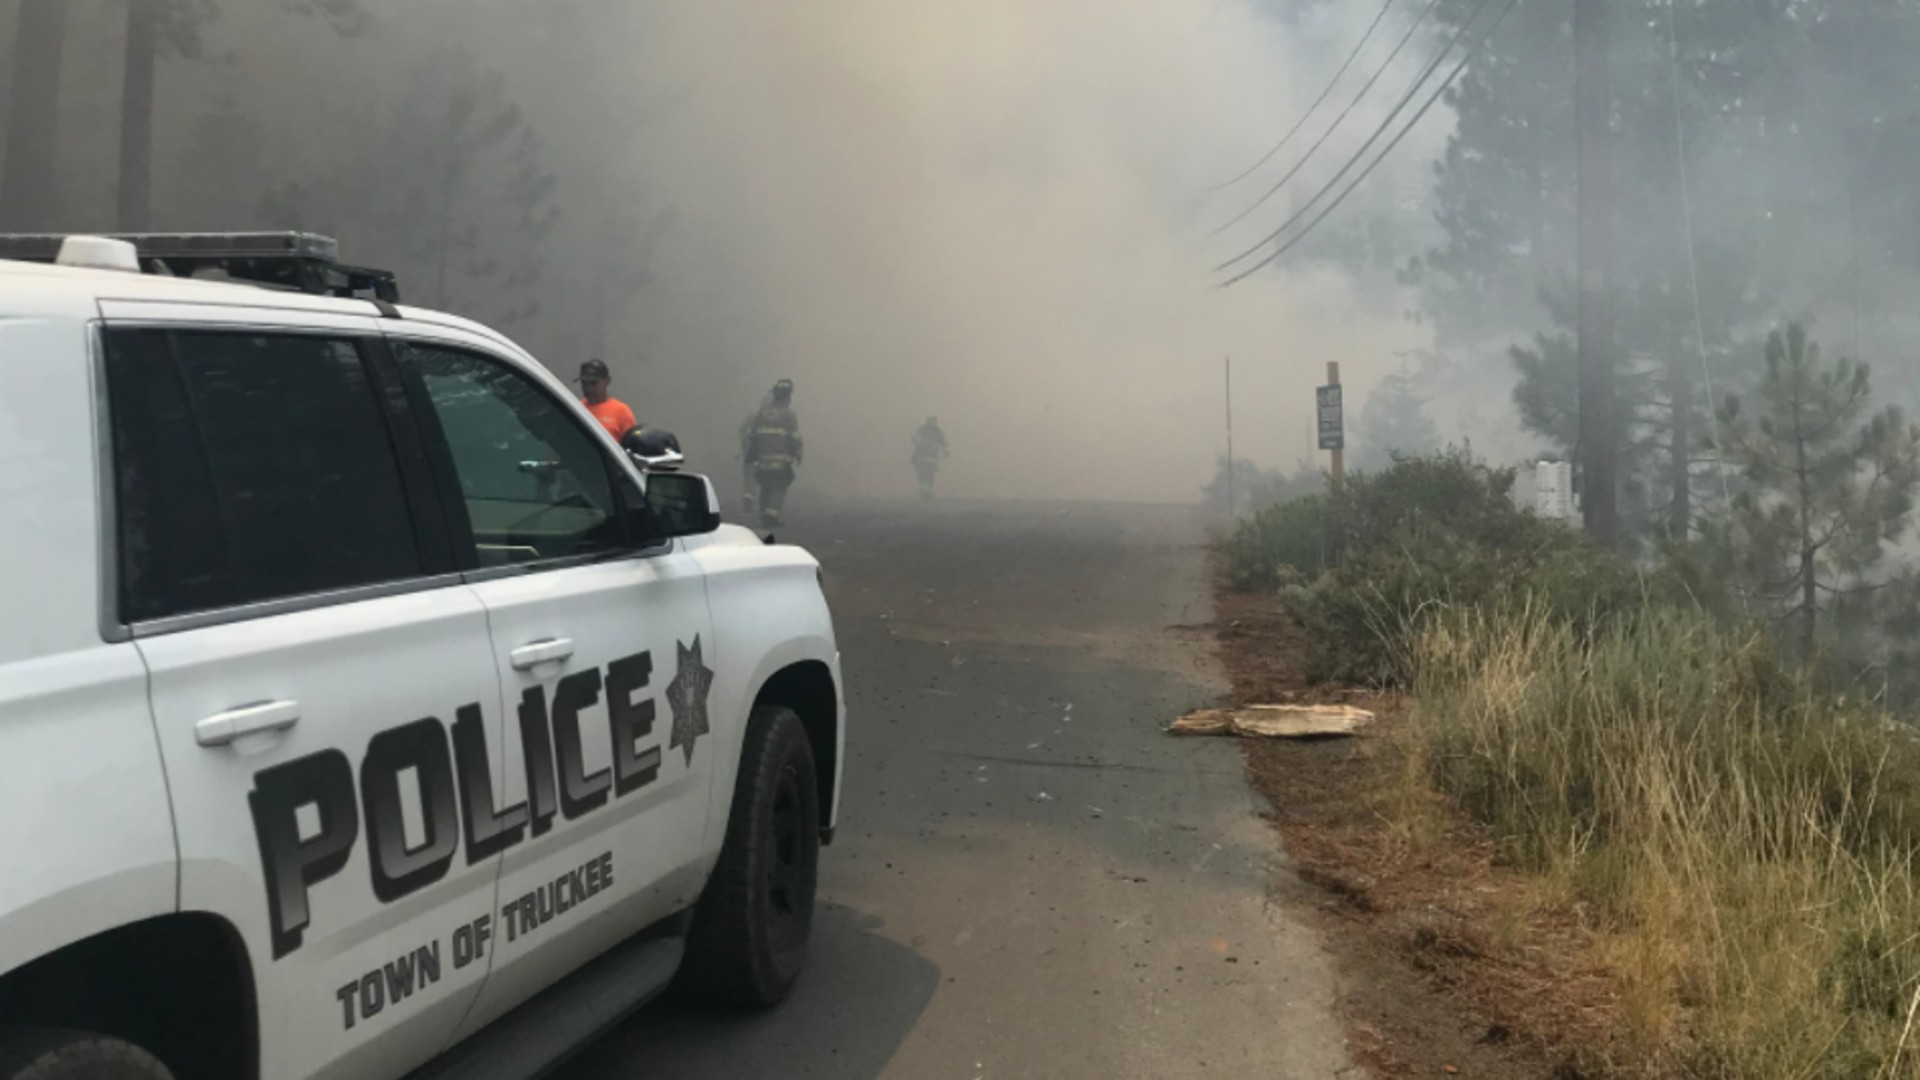 A small place sparked a small brush fire in Truckee on July 26, 2021. (Truckee Police Department)